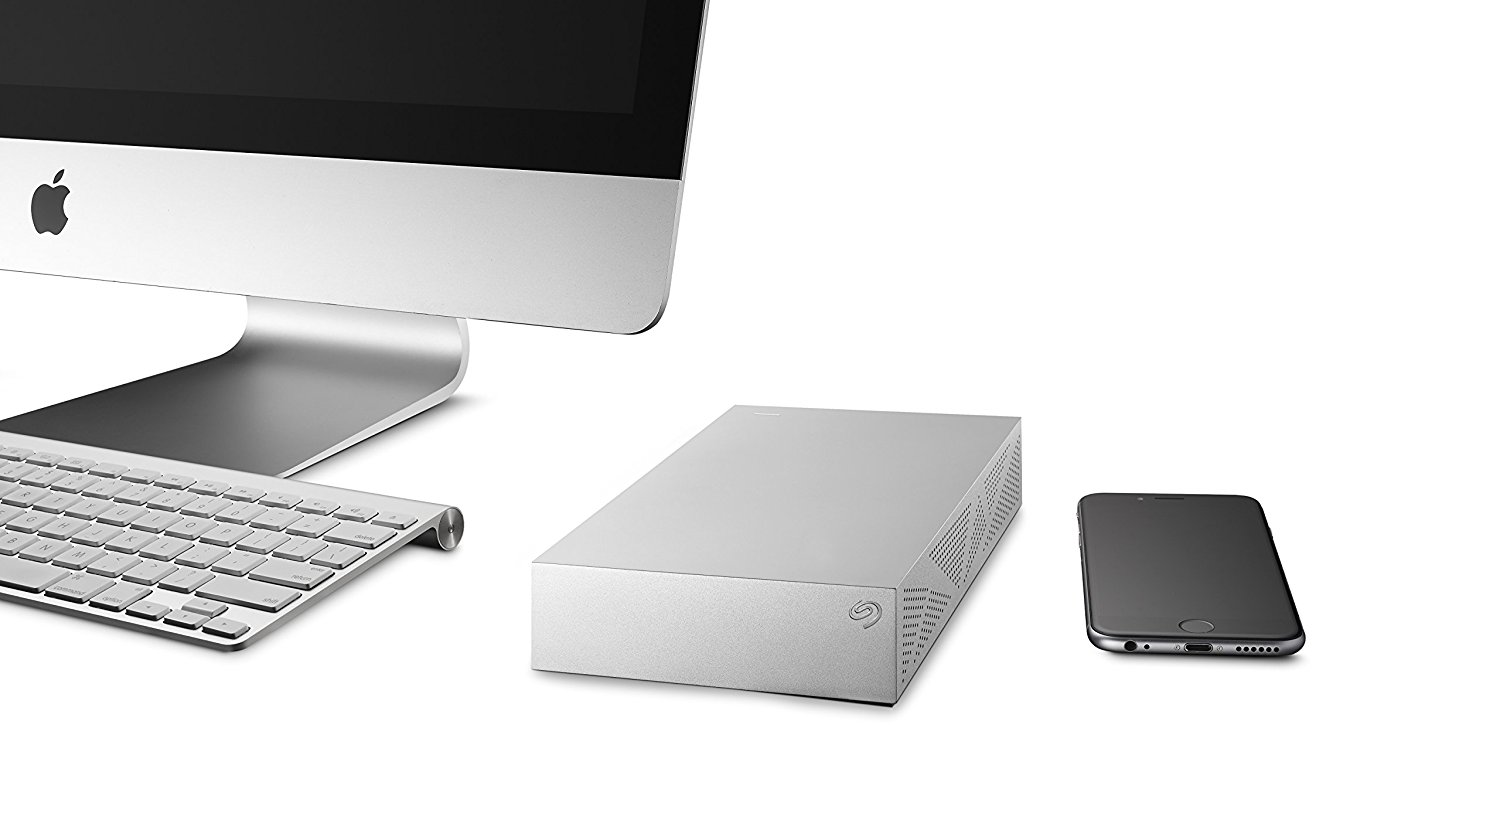 Best external storage options for macbook air